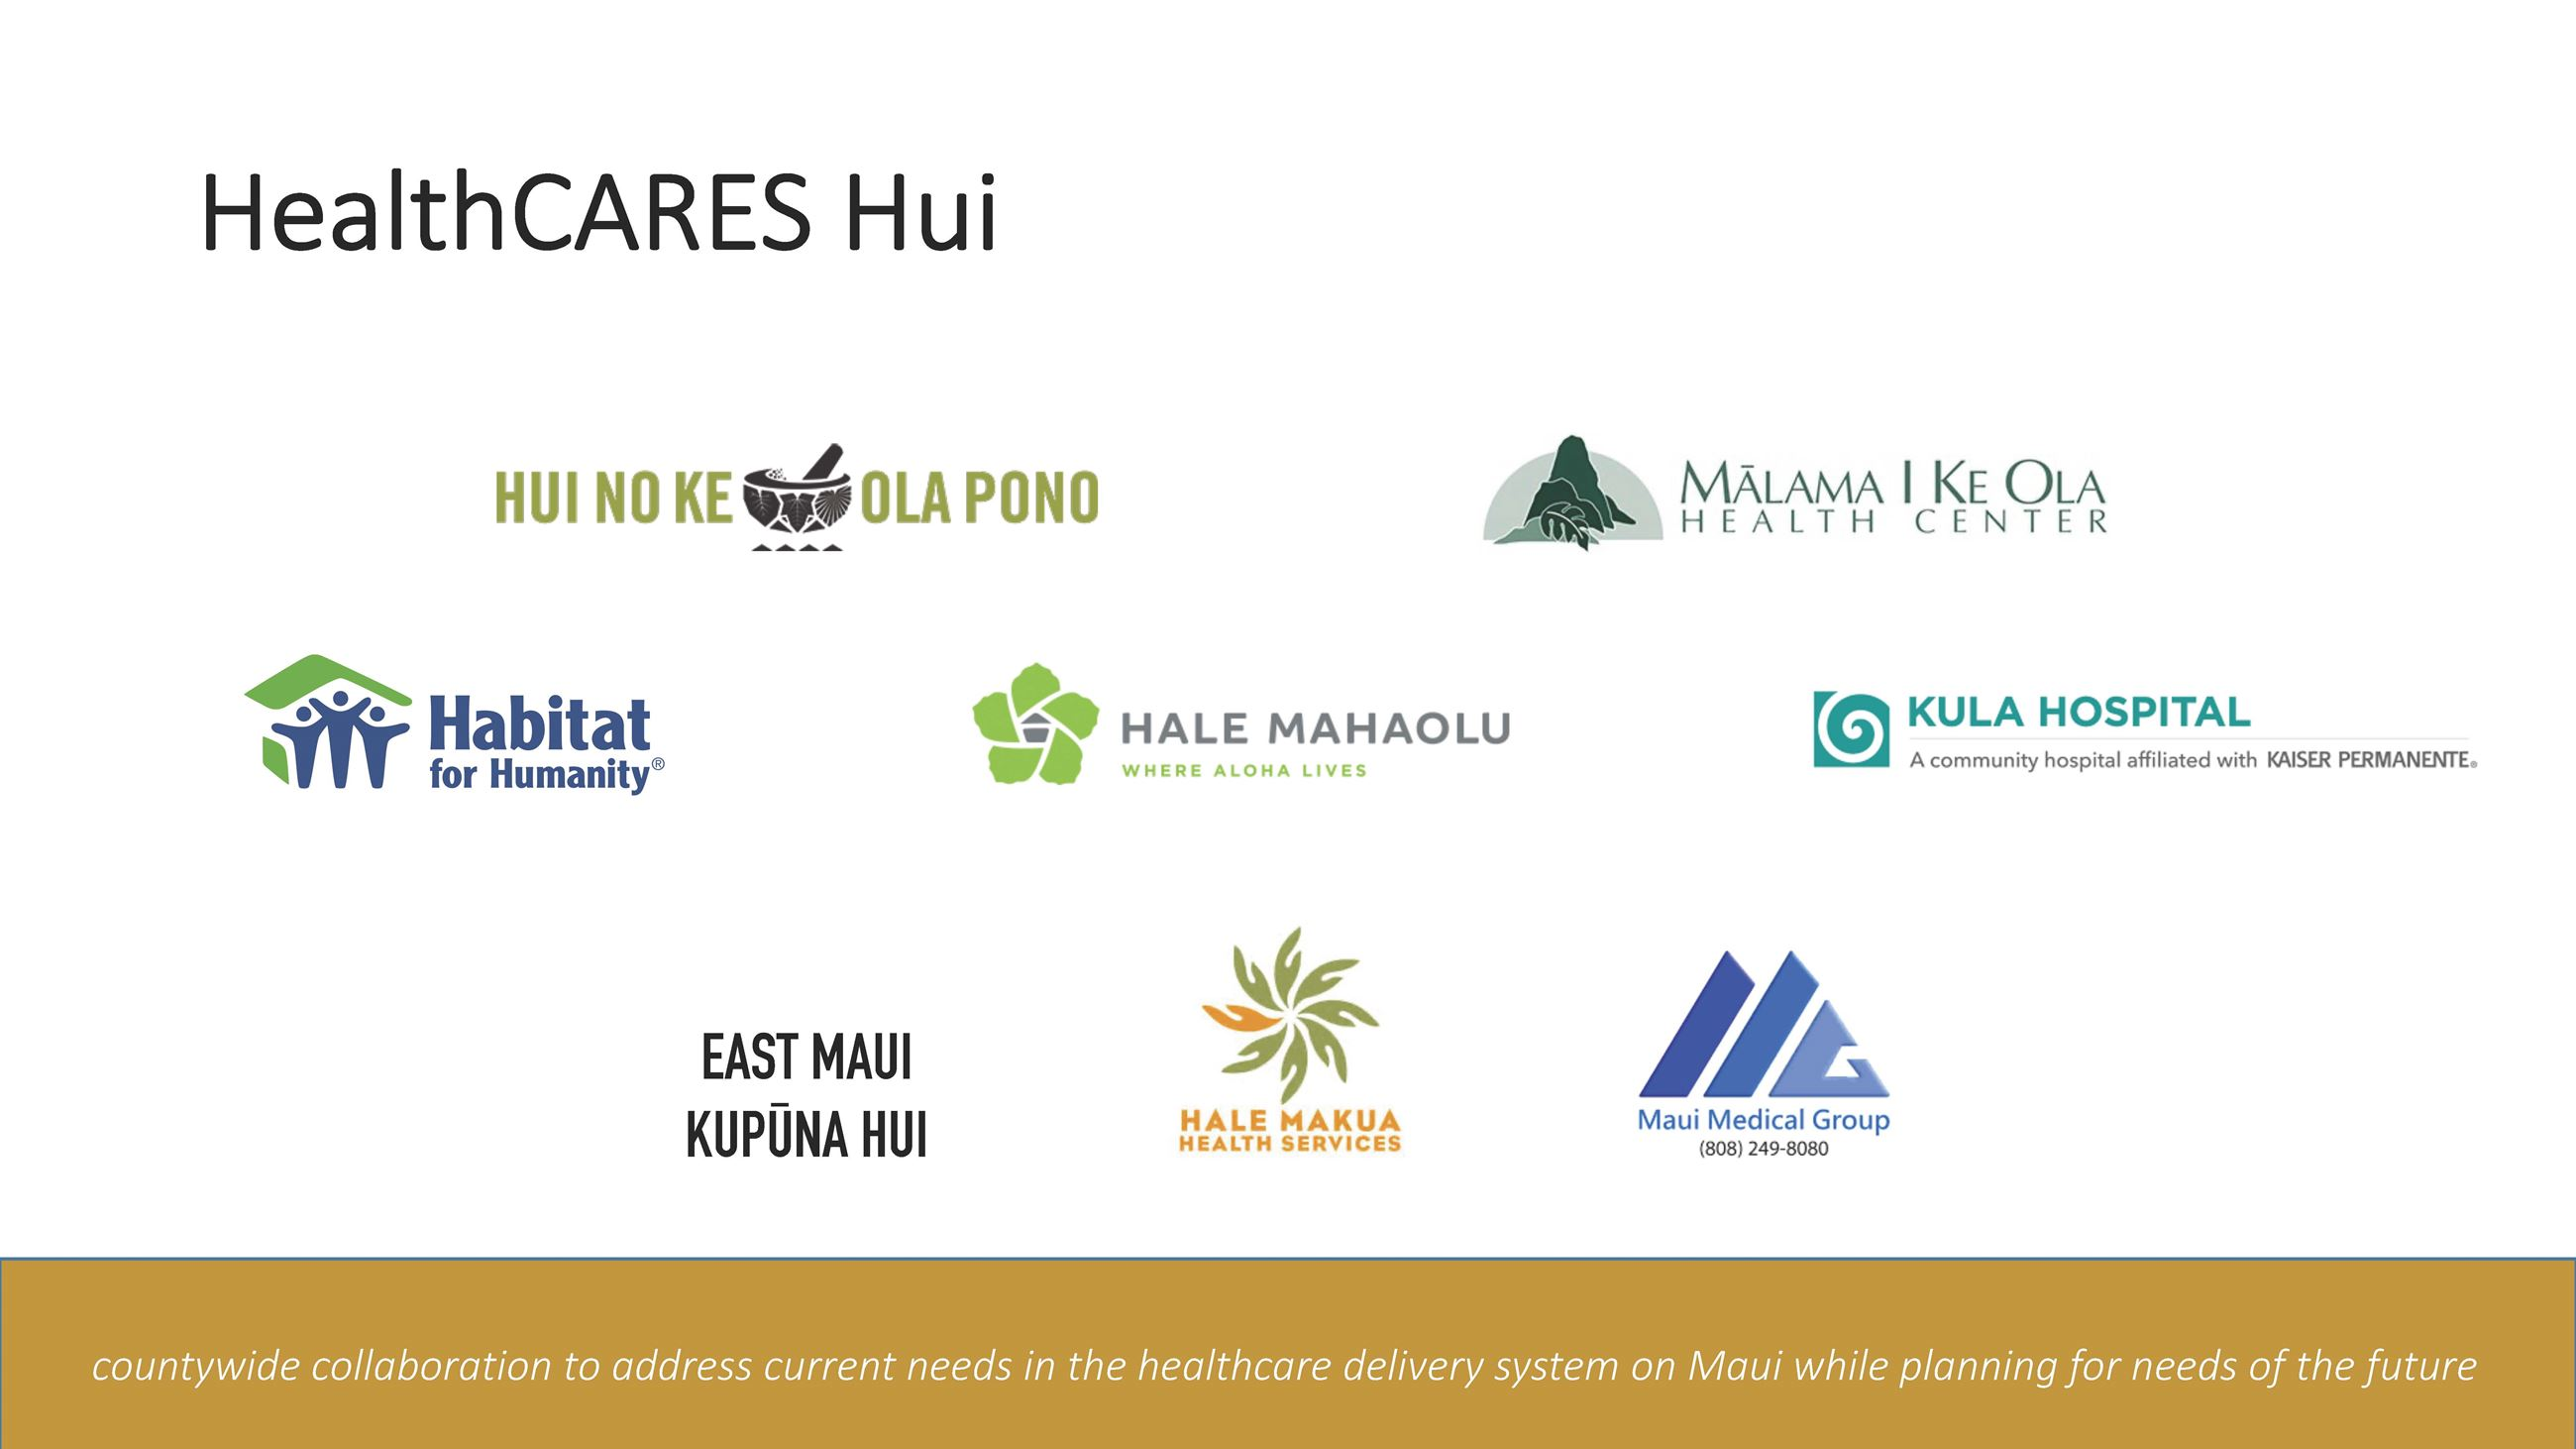 HealthCARES Hui